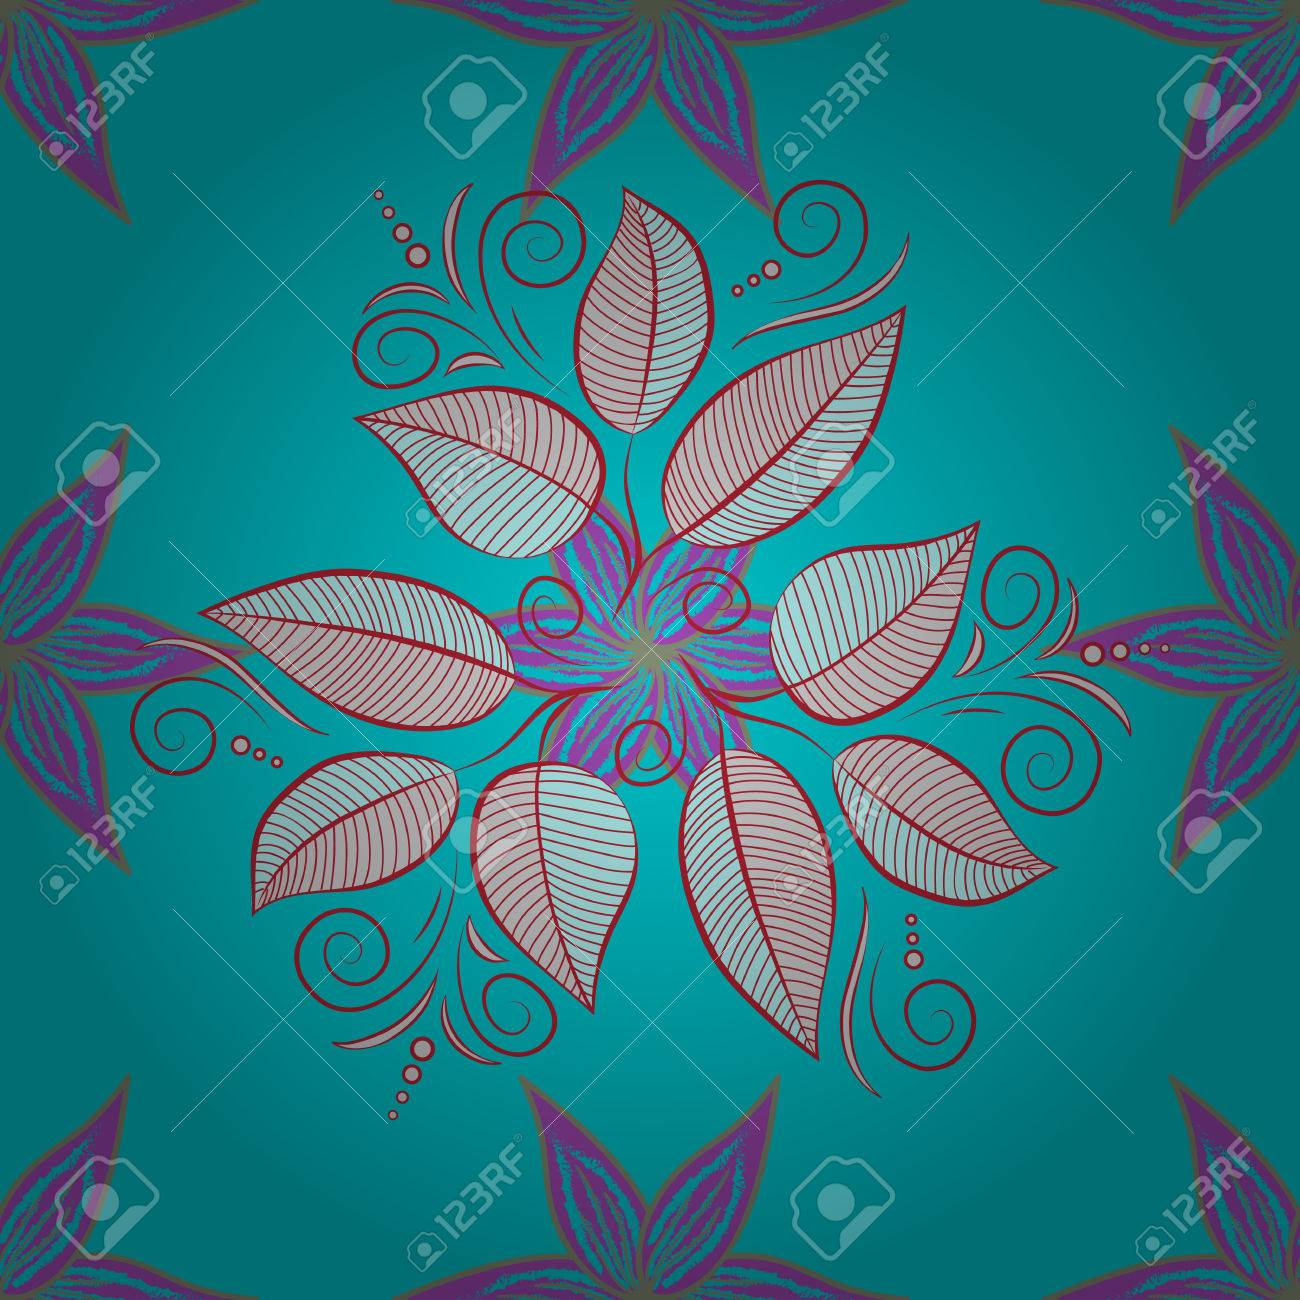 Exceptional The Elegant The Template For Fashion Prints. Modern Floral Background.  Amazing Seamless Floral Pattern